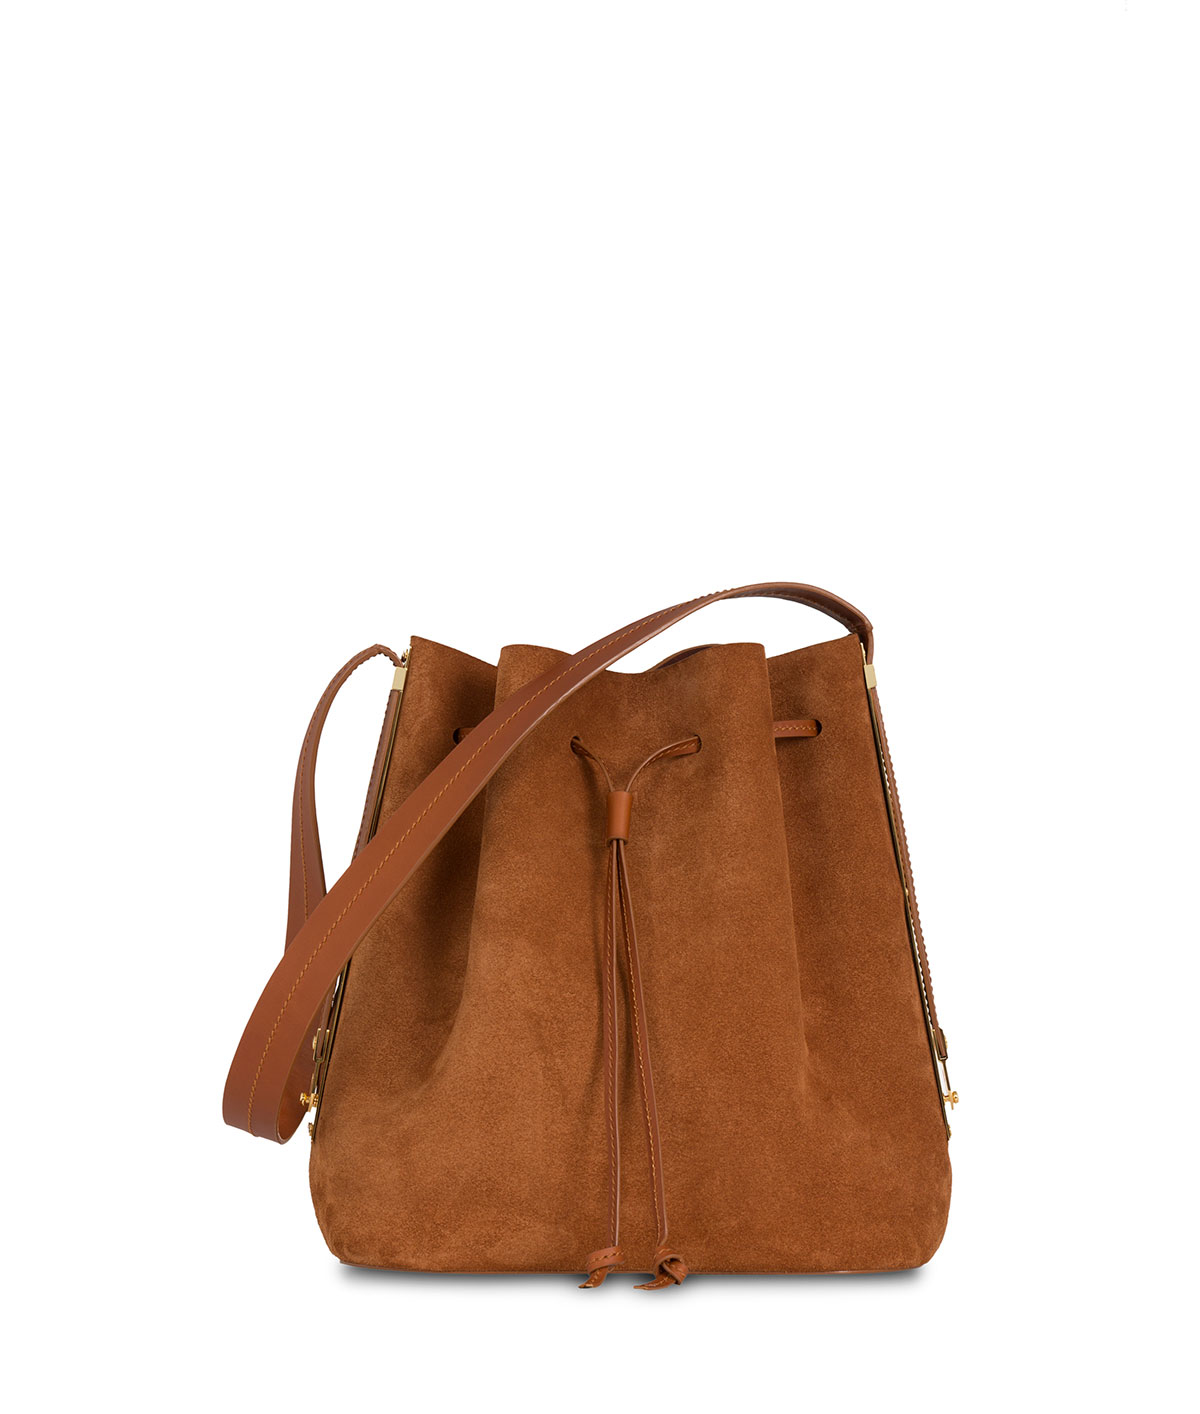 Greatest Lyst - Sophie Hulme Gibson Suede Bucket Bag in Brown VQ75